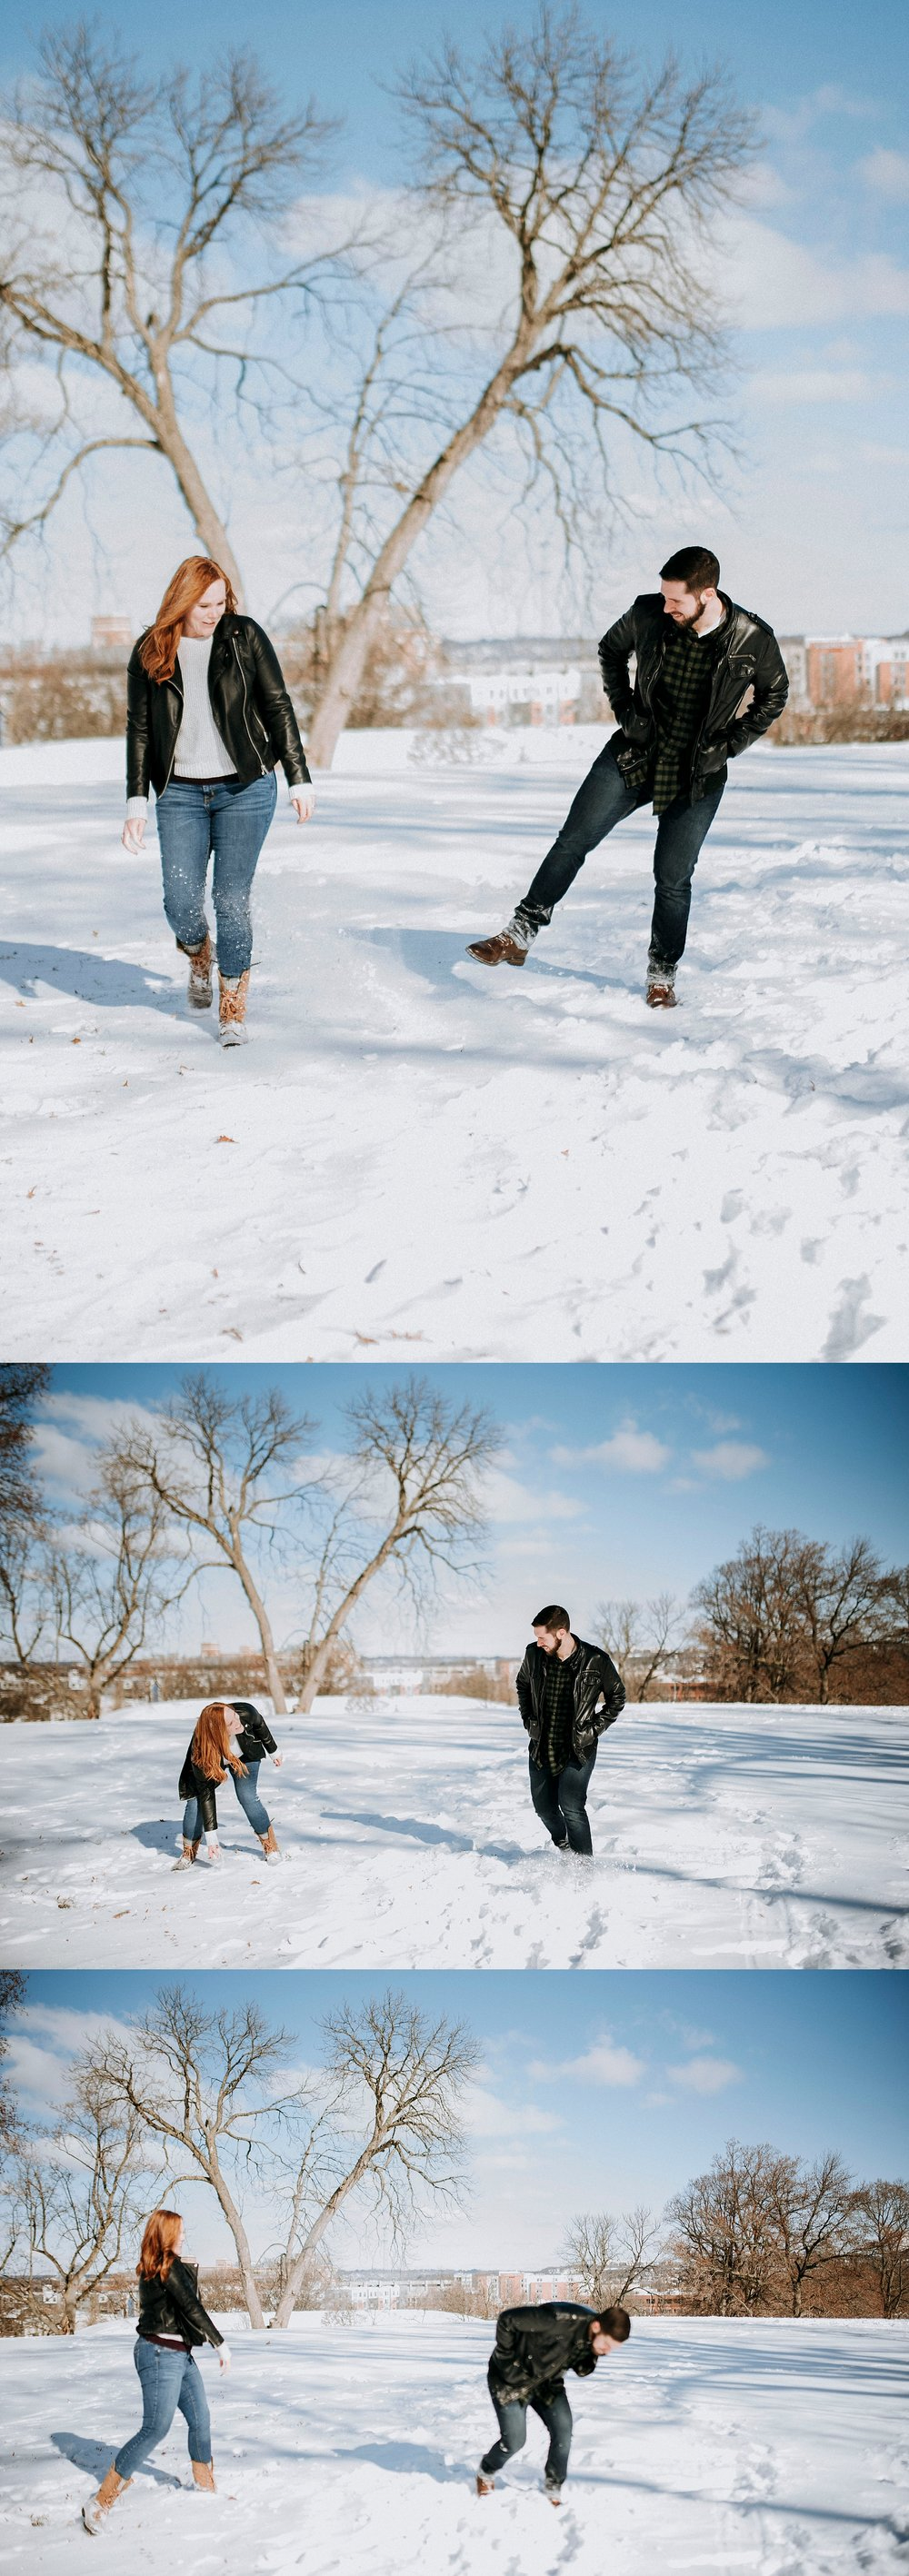 Pictures in the snow - photojournalistic